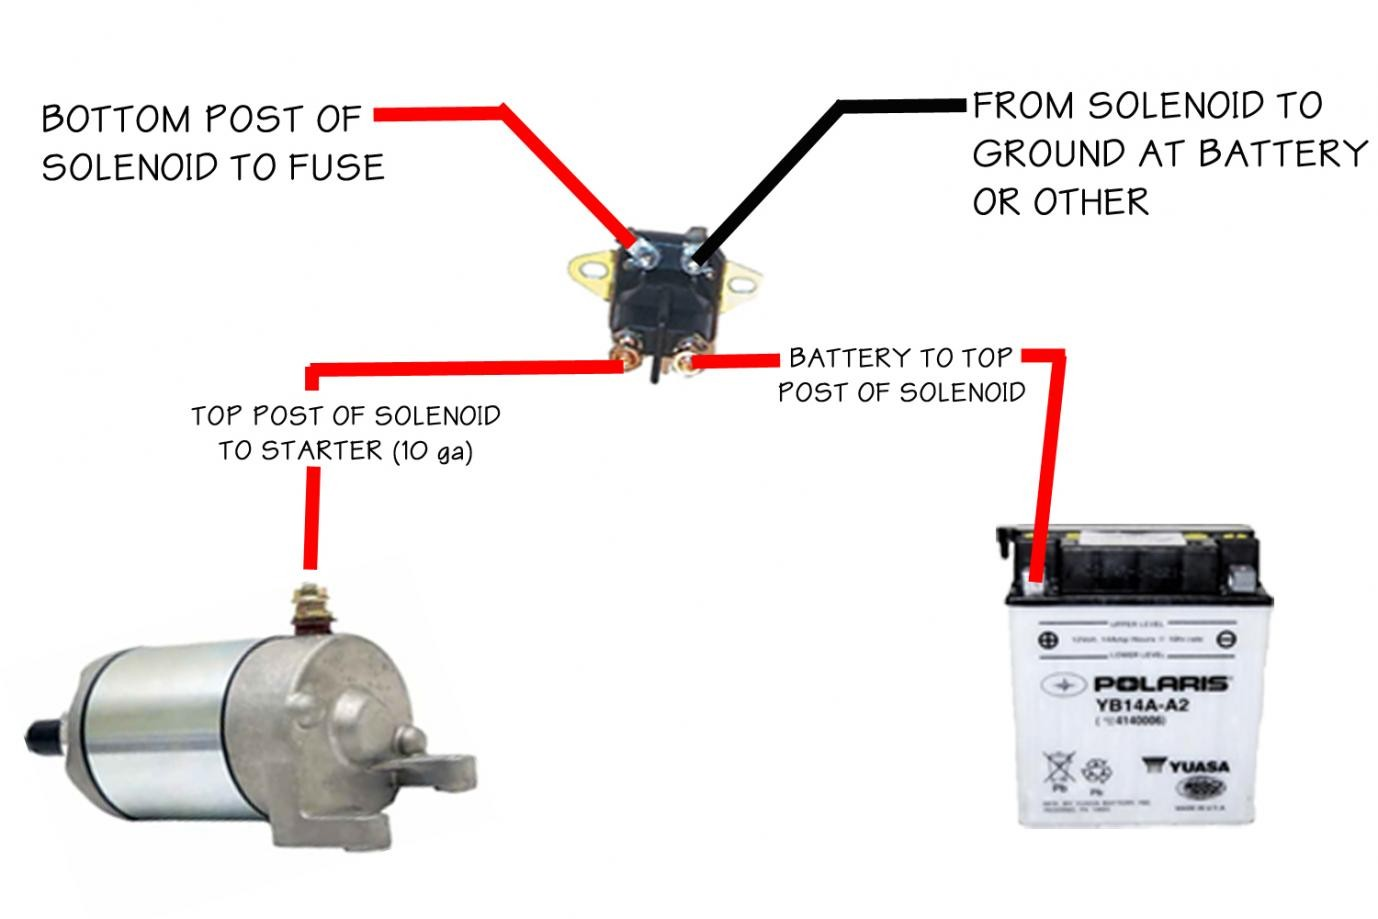 Starter solenoid wiring polaris atv forum wiring diagram data quadboss atv winch wiring diagram download wiring diagrams u2022 rh wiringdiagramblog today polaris 330 magnum solenoid starter polaris 500 starter solenoid cheapraybanclubmaster Images